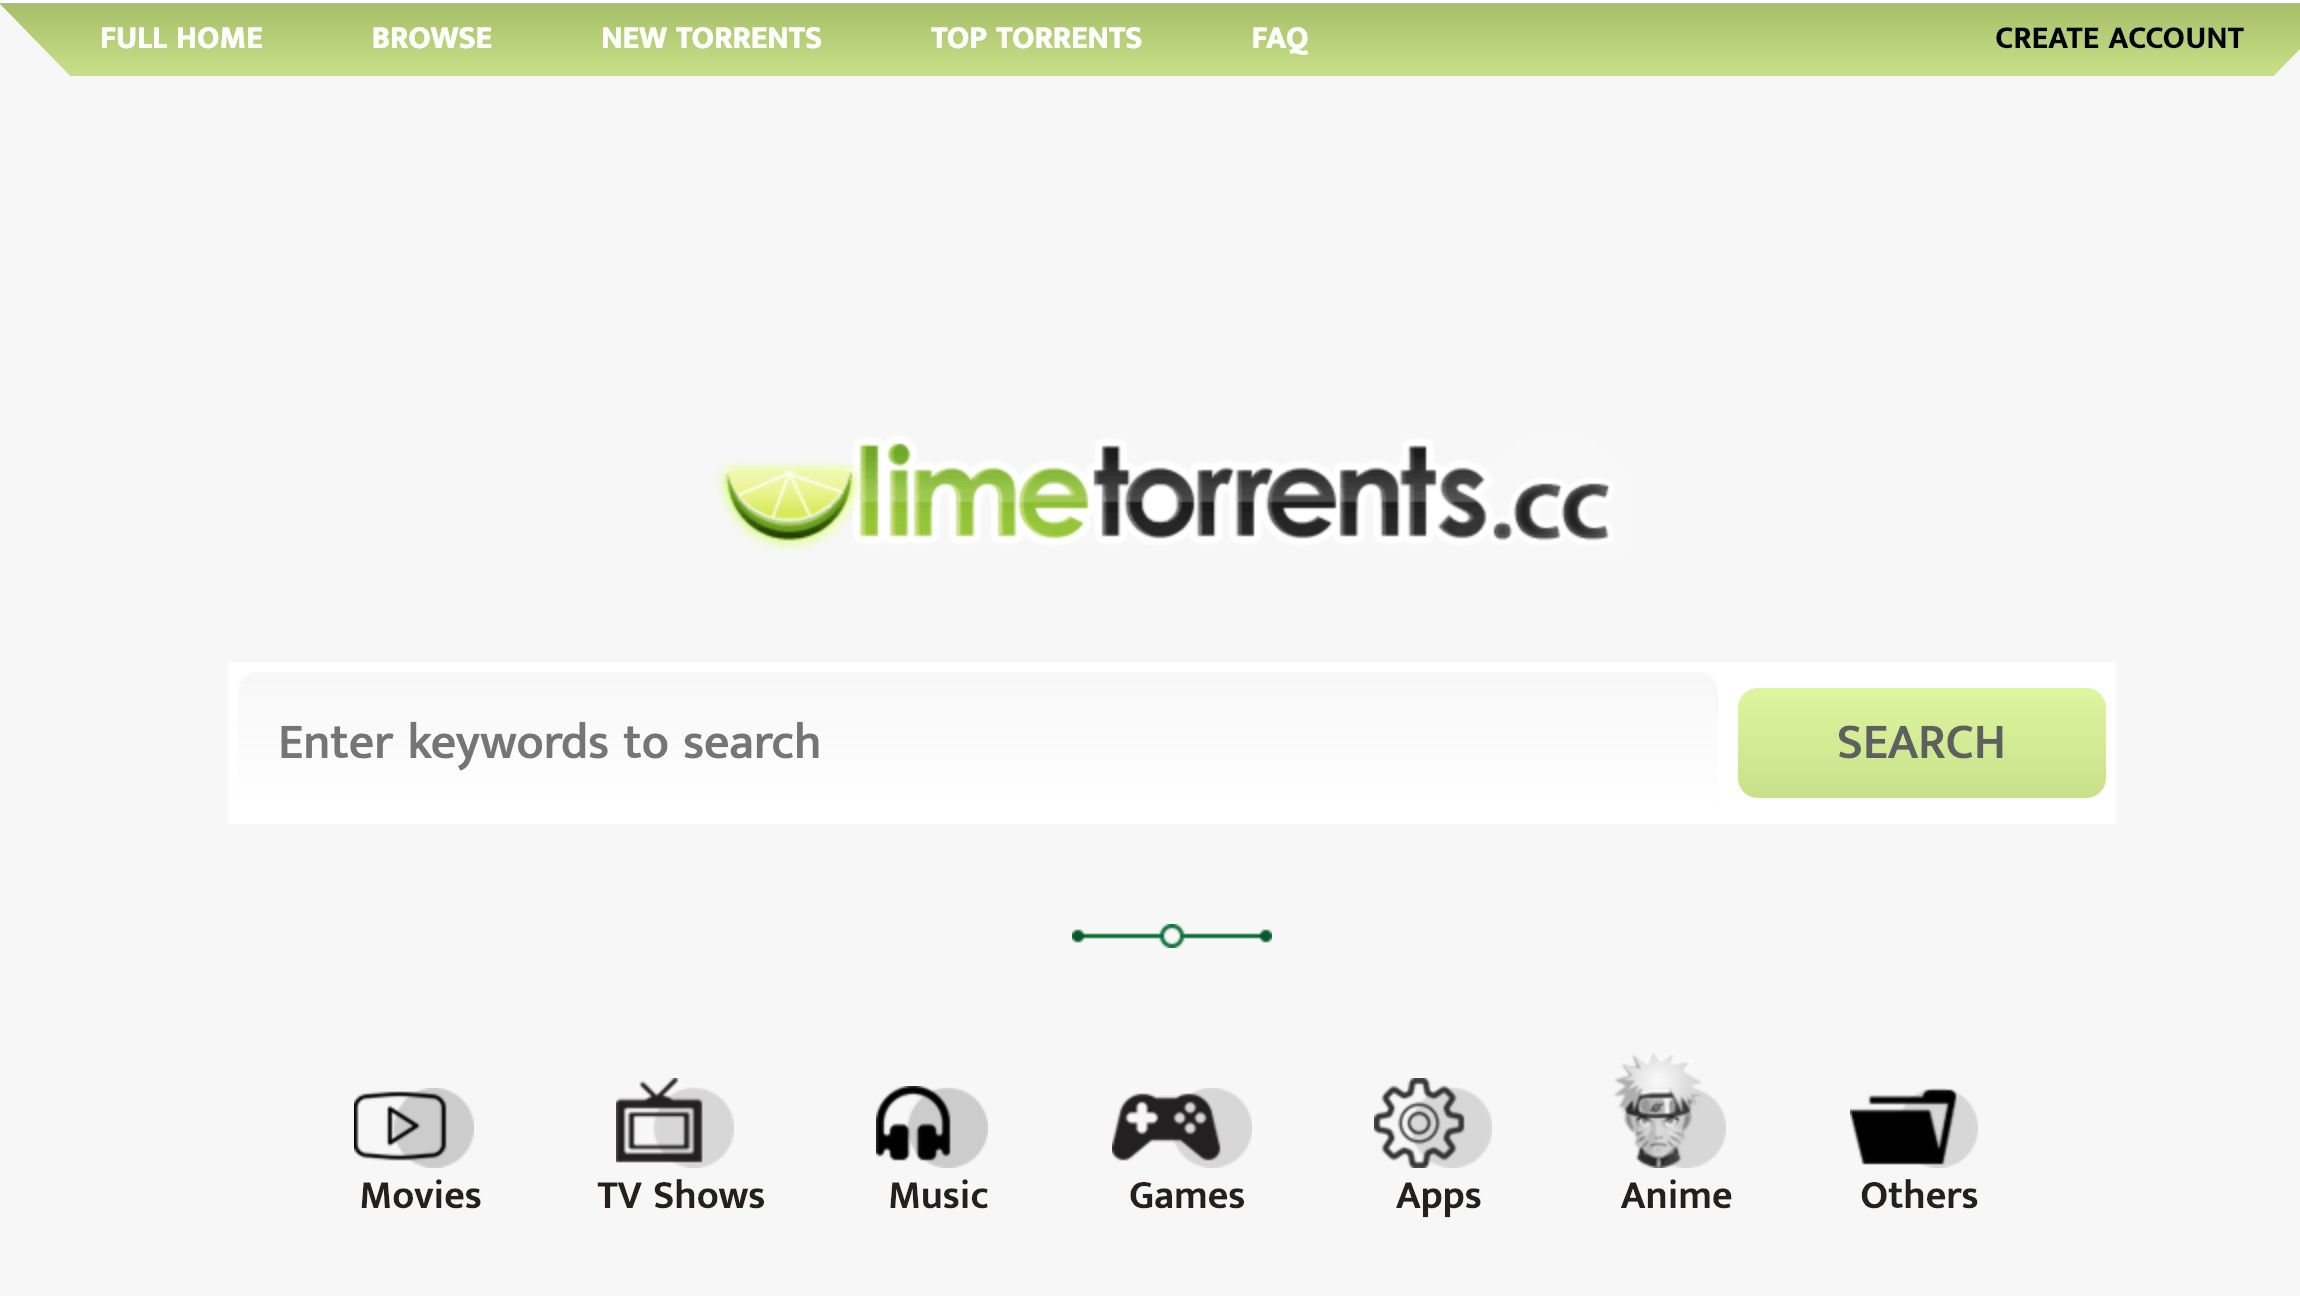 best movie torrenting sites december 2018